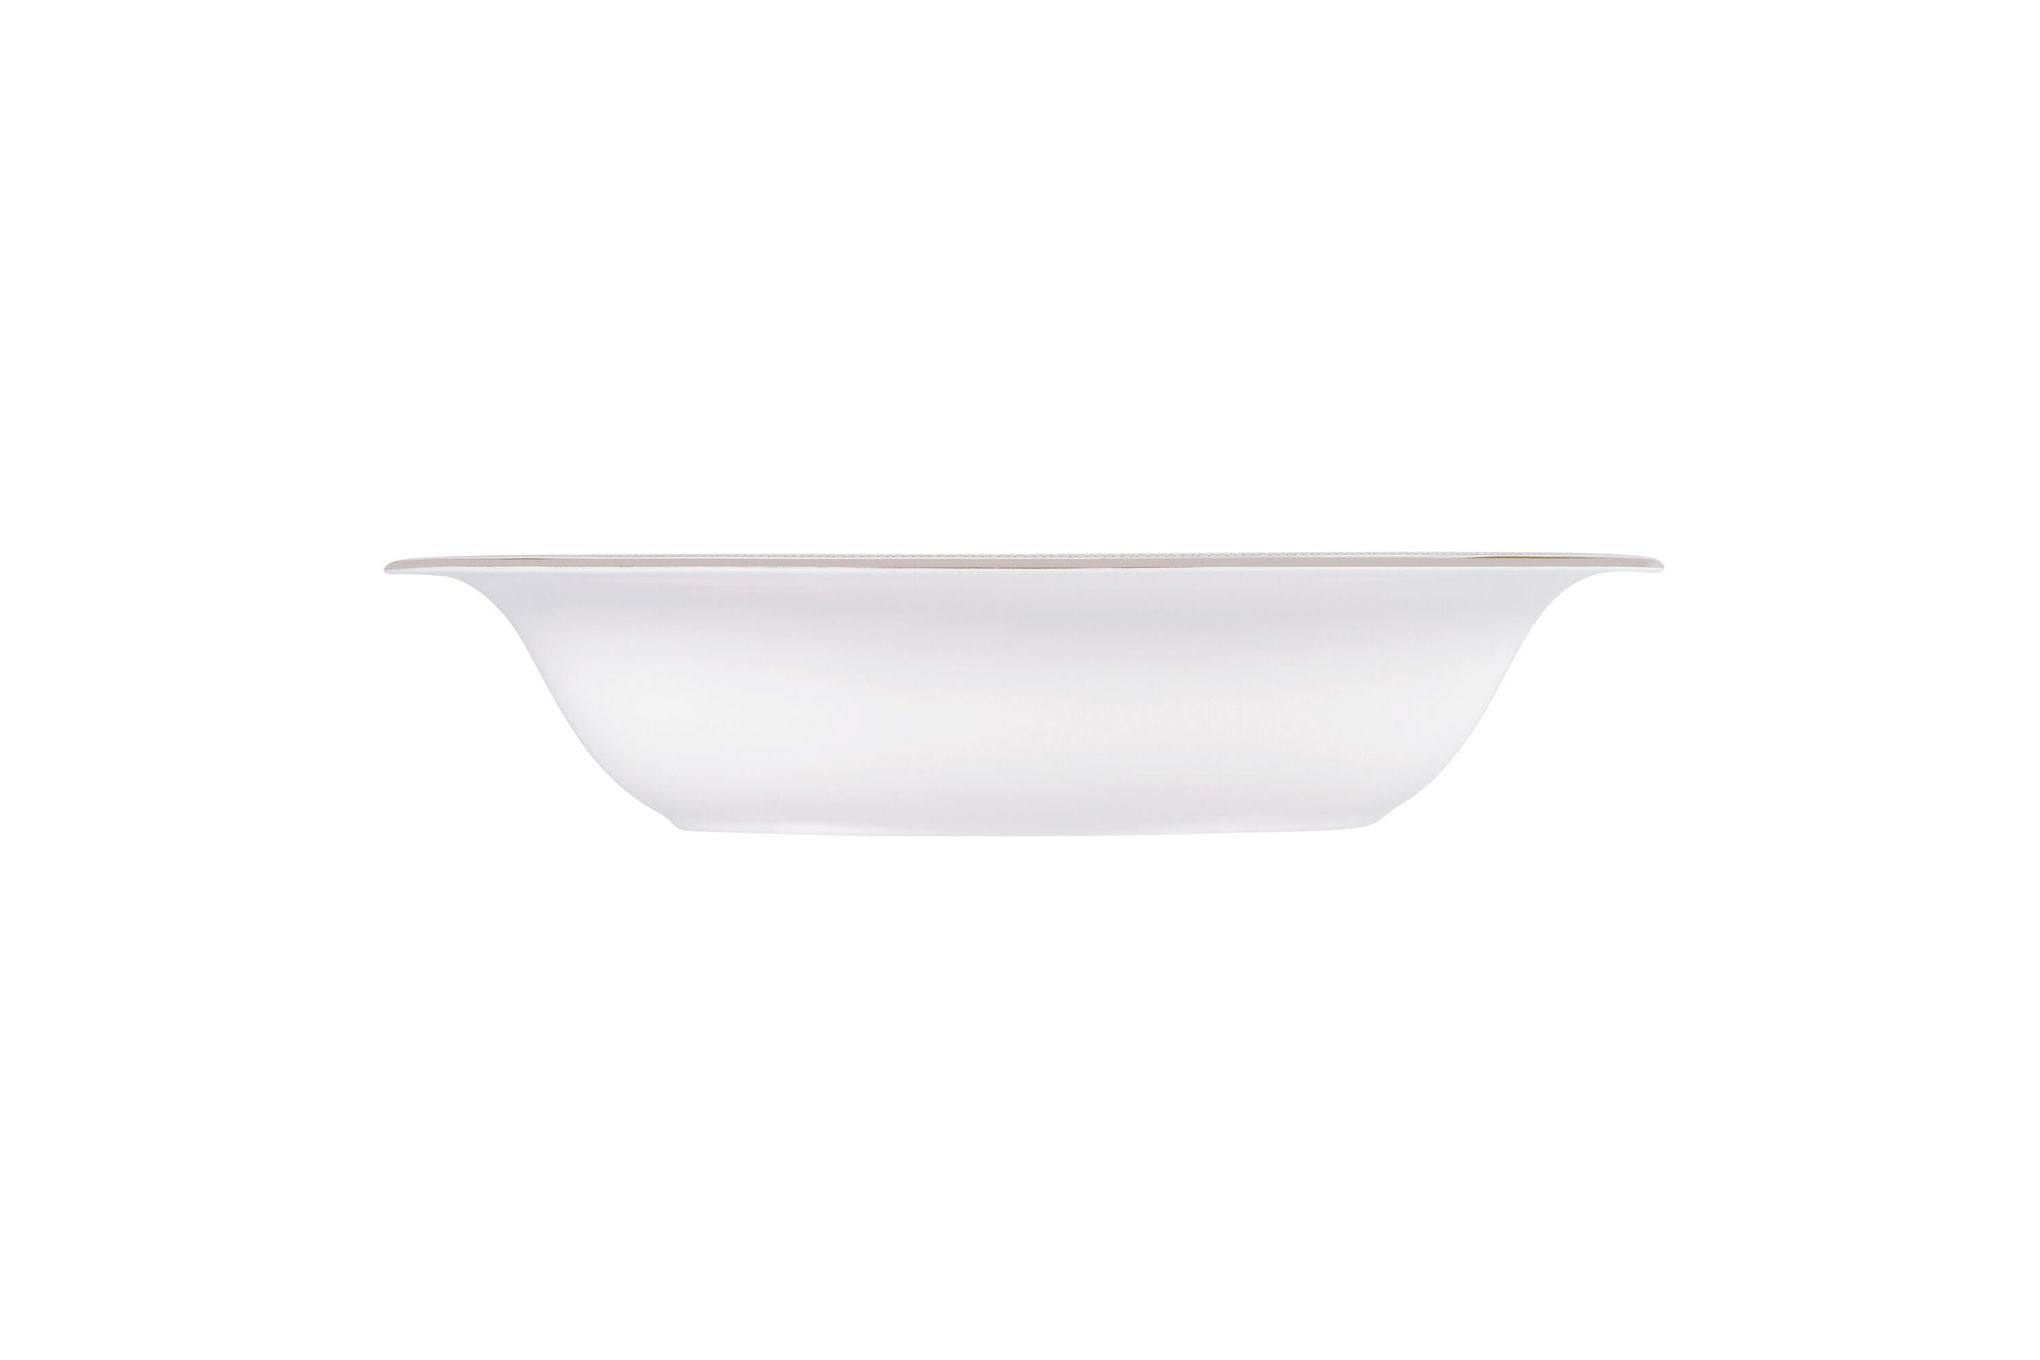 Vera Wang for Wedgwood Lace Gold Vegetable Dish (Open) 25cm thumb 1